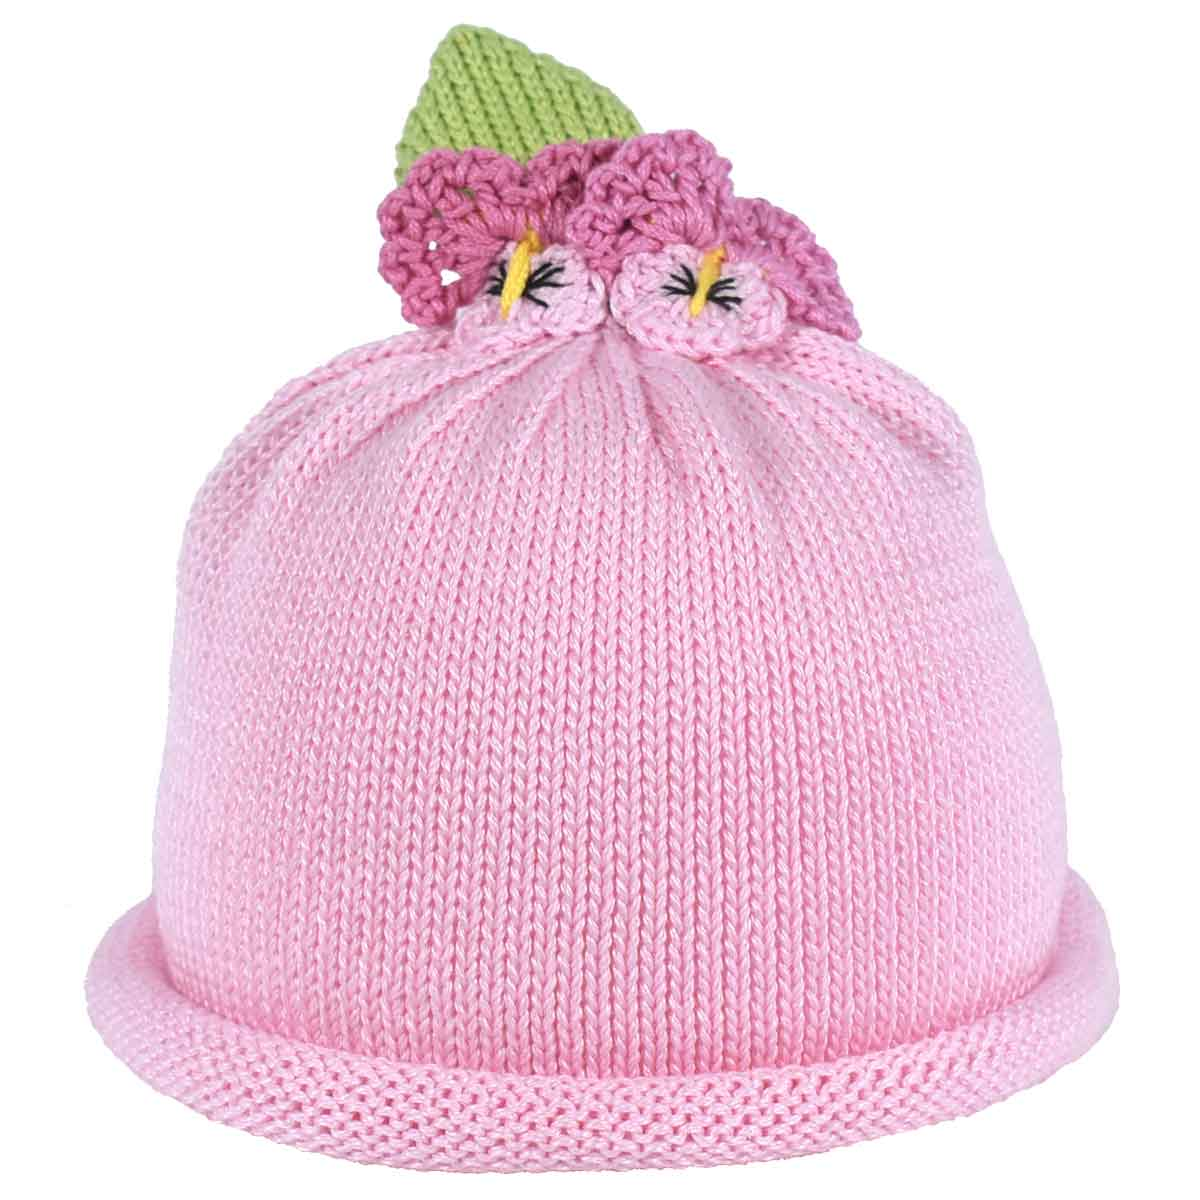 Pretty pink pansy flower on pink knit hat margareta horn design pretty pink pansy flower mightylinksfo Choice Image